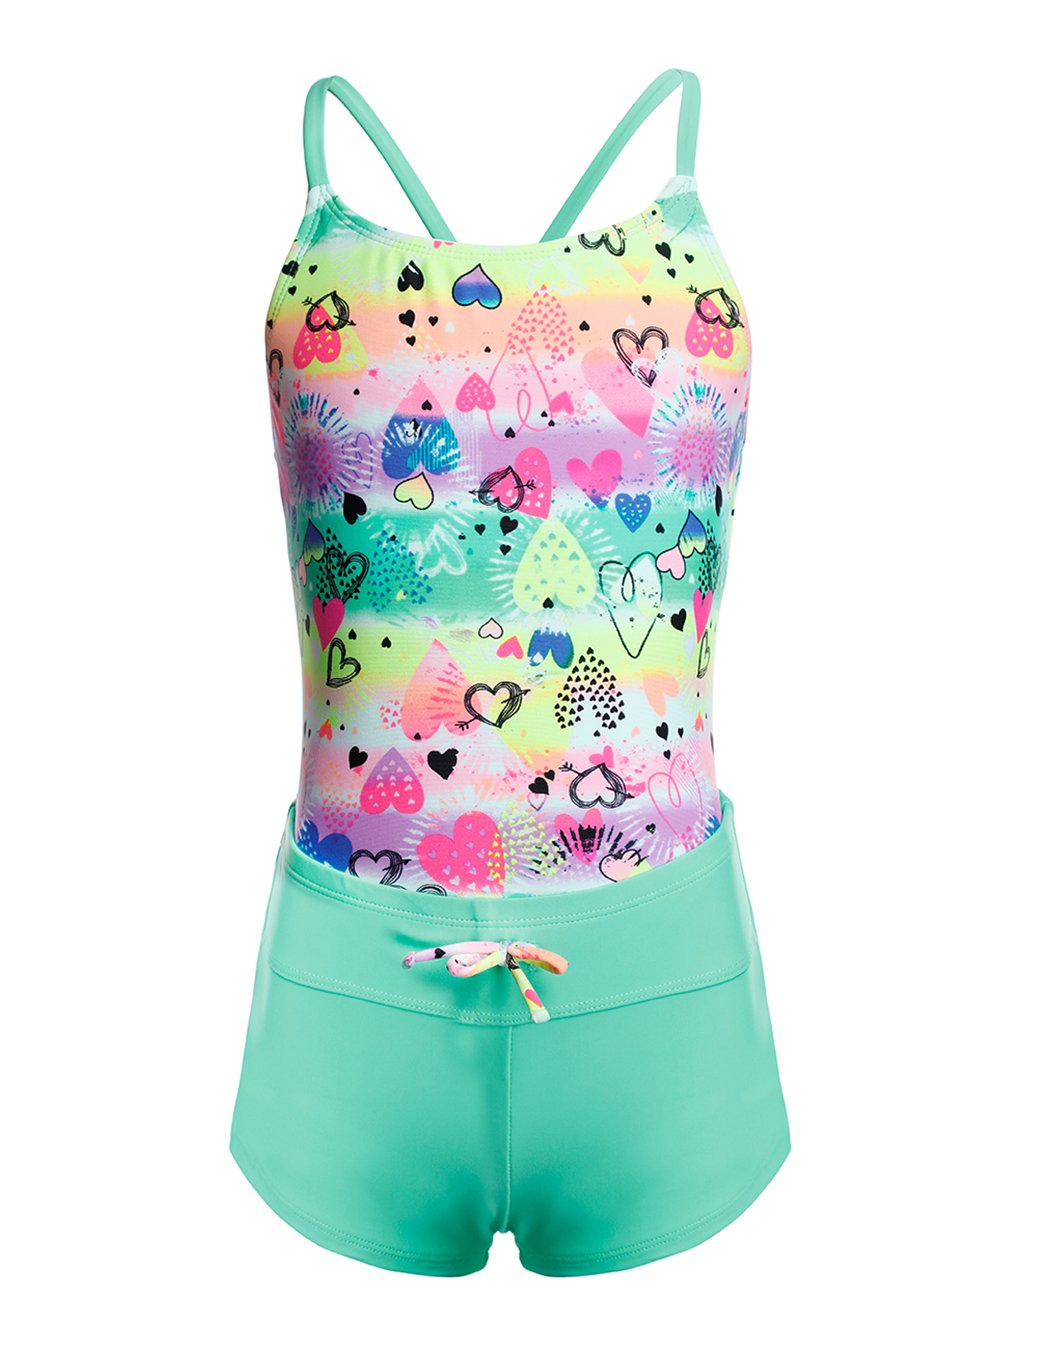 iDrawl Large Girls Two Pieces Tankini Set X Back Heart Printed Top with adjustable drawstring shorts Age 6 to 14